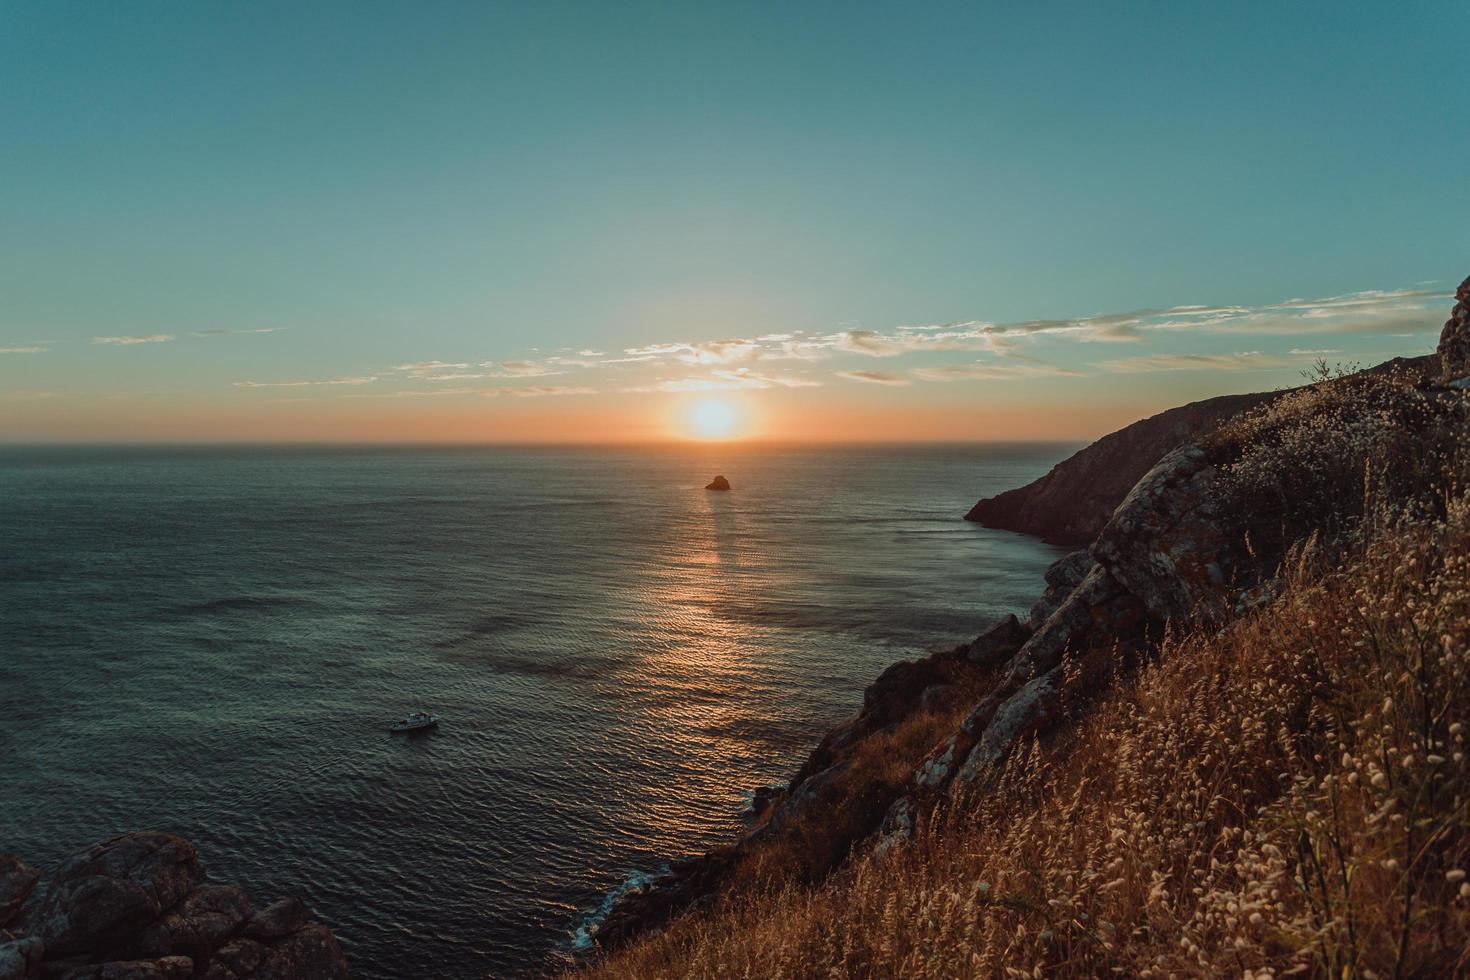 Sunset from the cliffs  photo